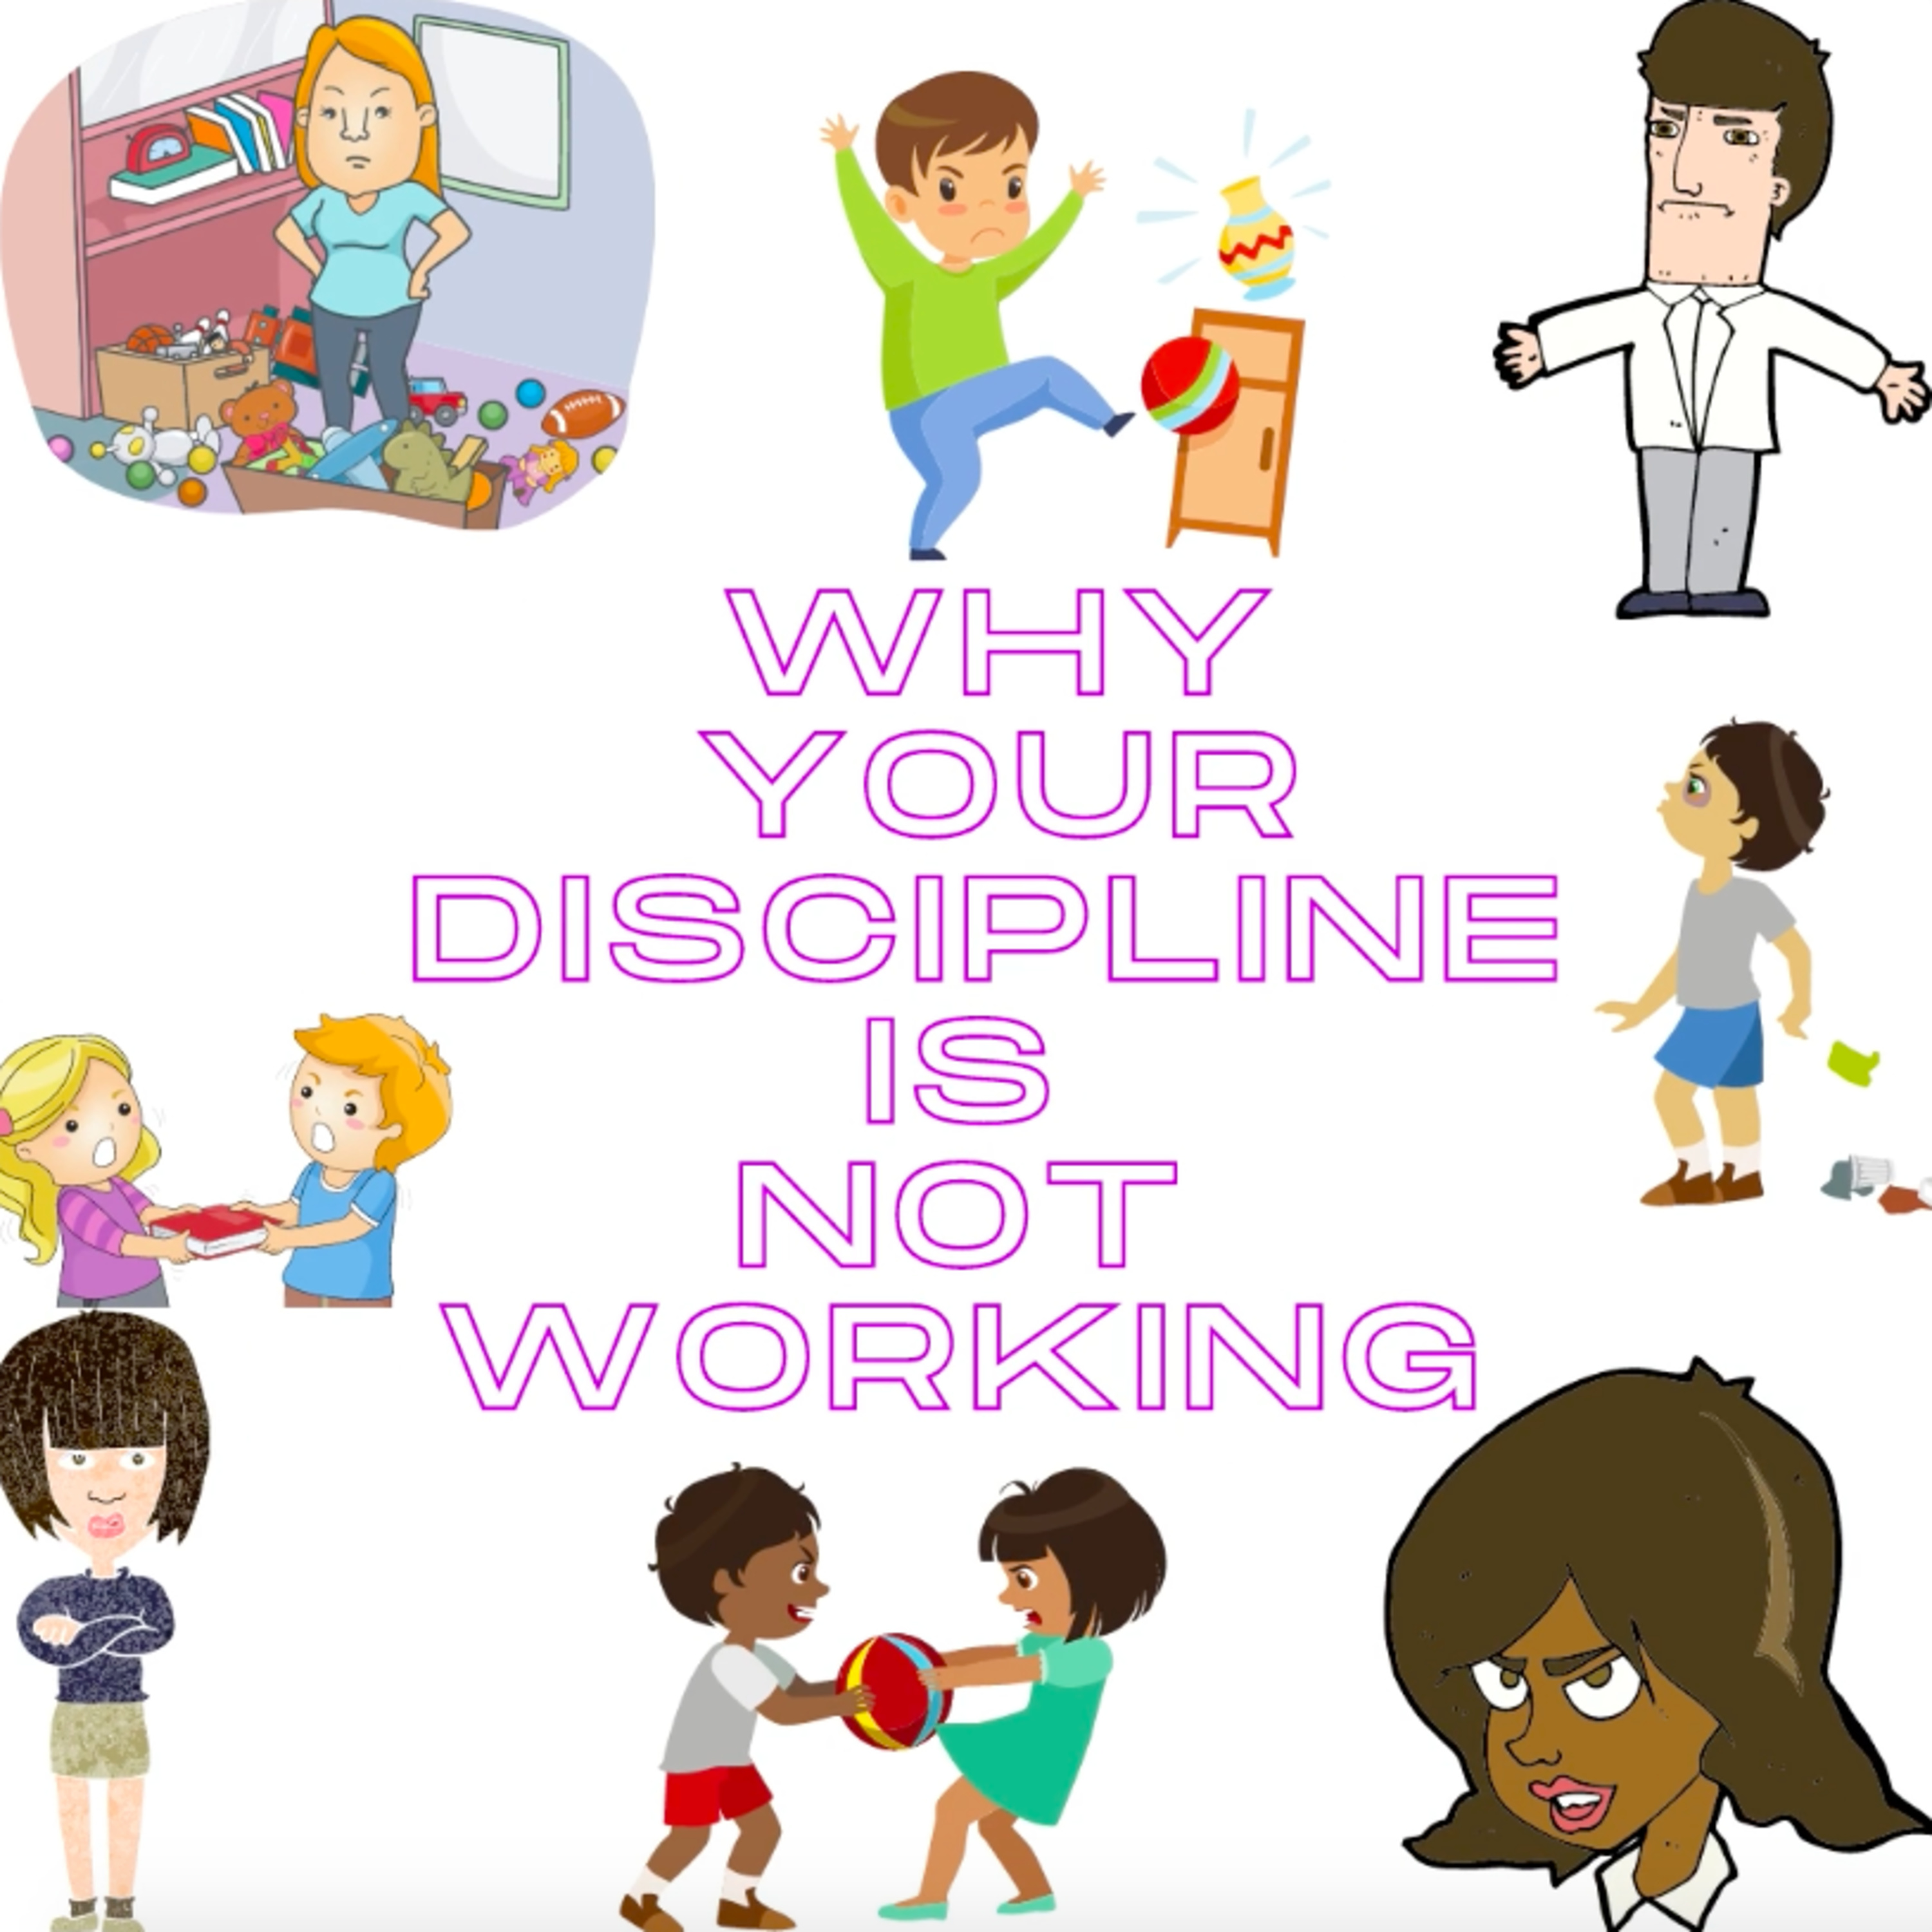 Why Your Discipline Is Not Working